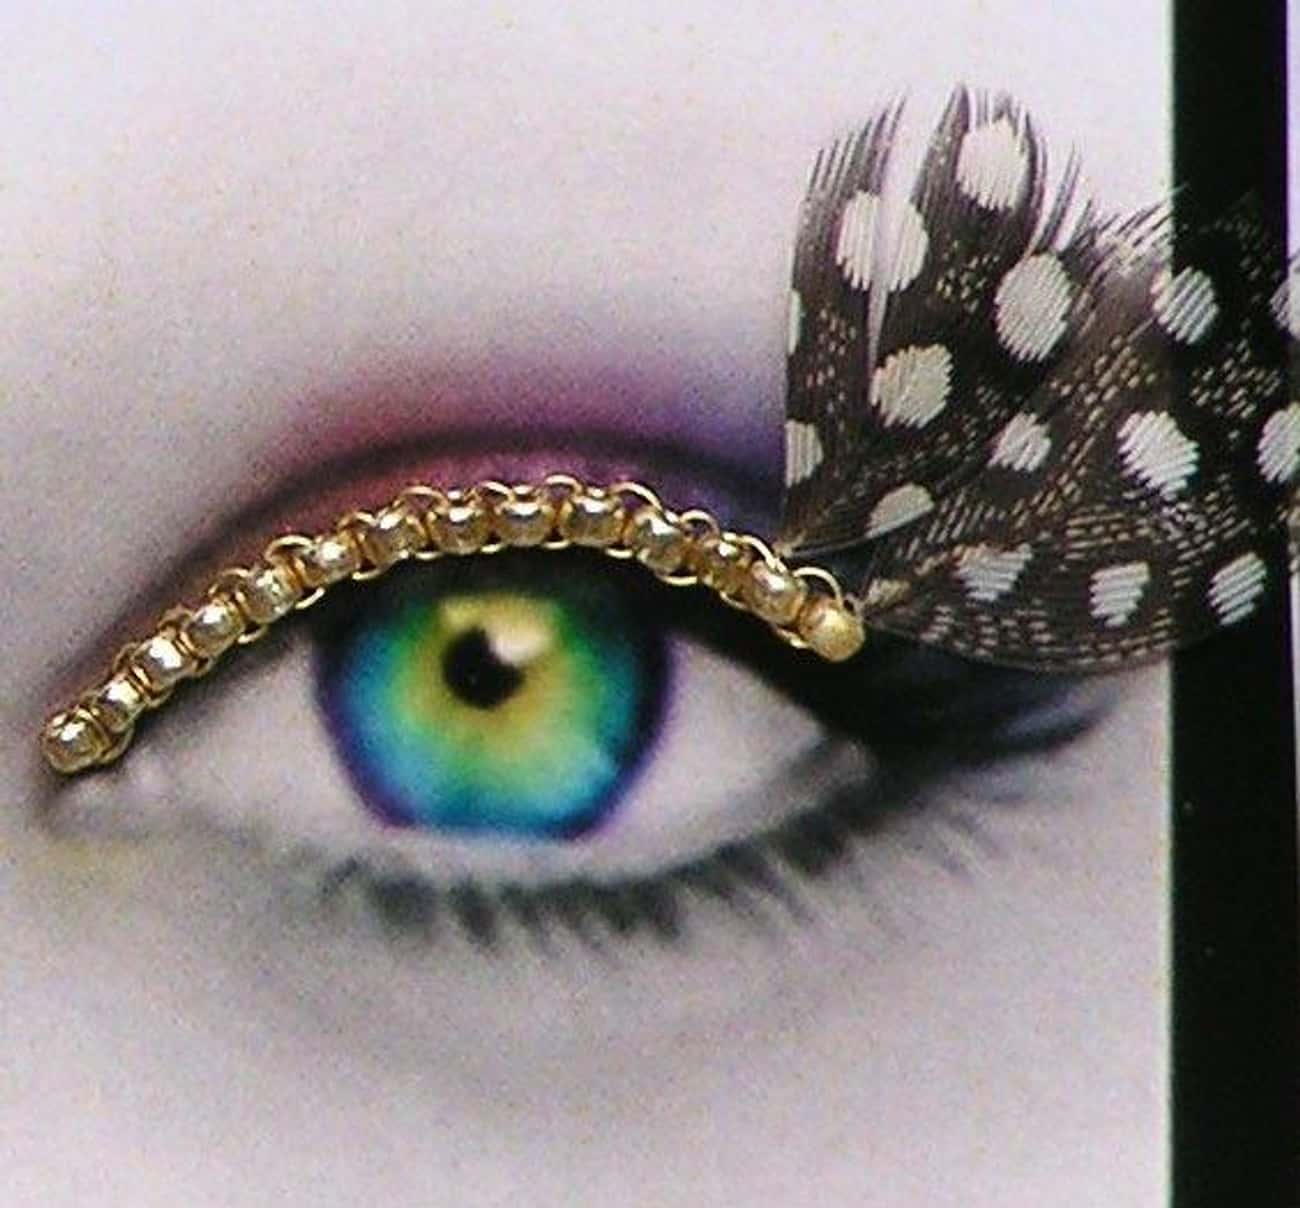 Bring The Bling With 24K Gold  is listed (or ranked) 3 on the list People Are Gluing Objects To Their Eyelids For The Perfect Instagram Photo